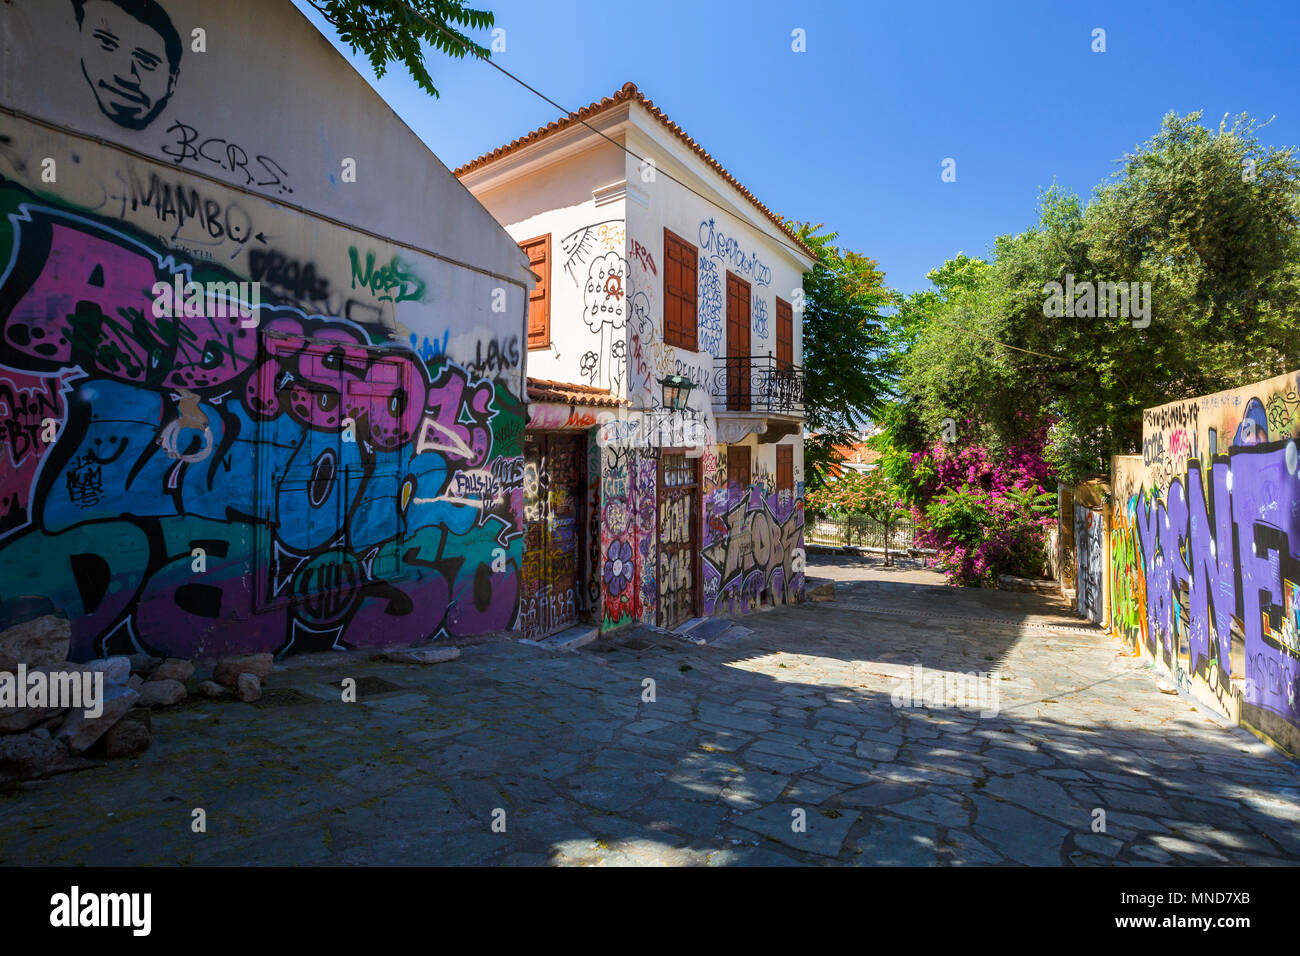 Athens, Greece - May 14, 2018: Plaka, the old town of Athens, is known for its ancient sites and charming neoclassical buildings however it has its ot - Stock Image